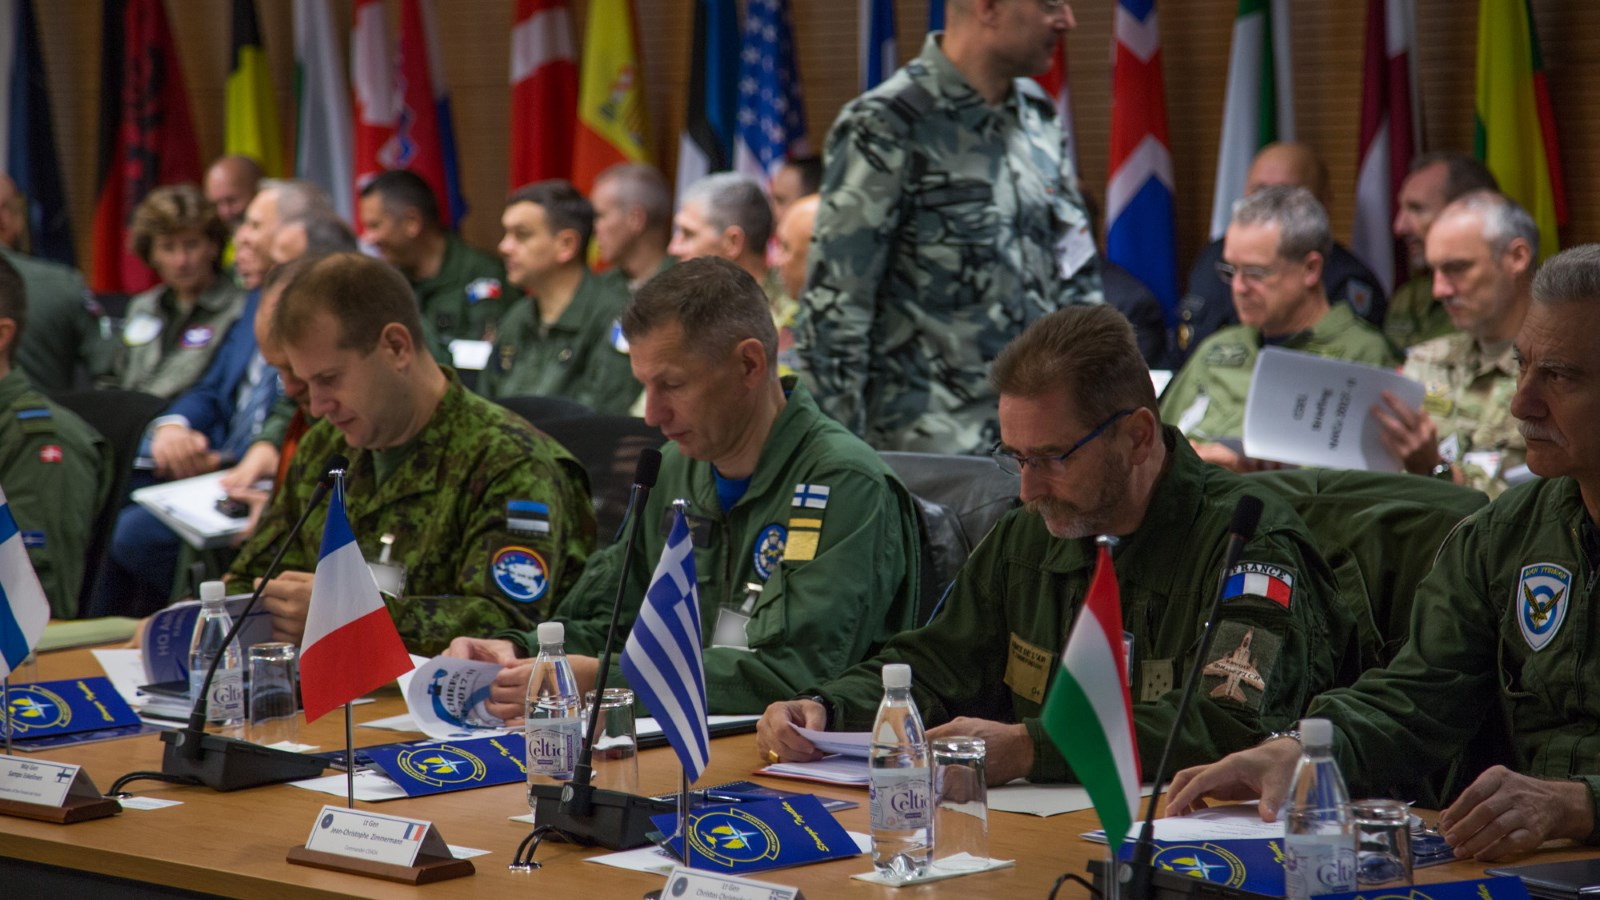 NATO Air Chiefs Symposium and Country Visit in Spain